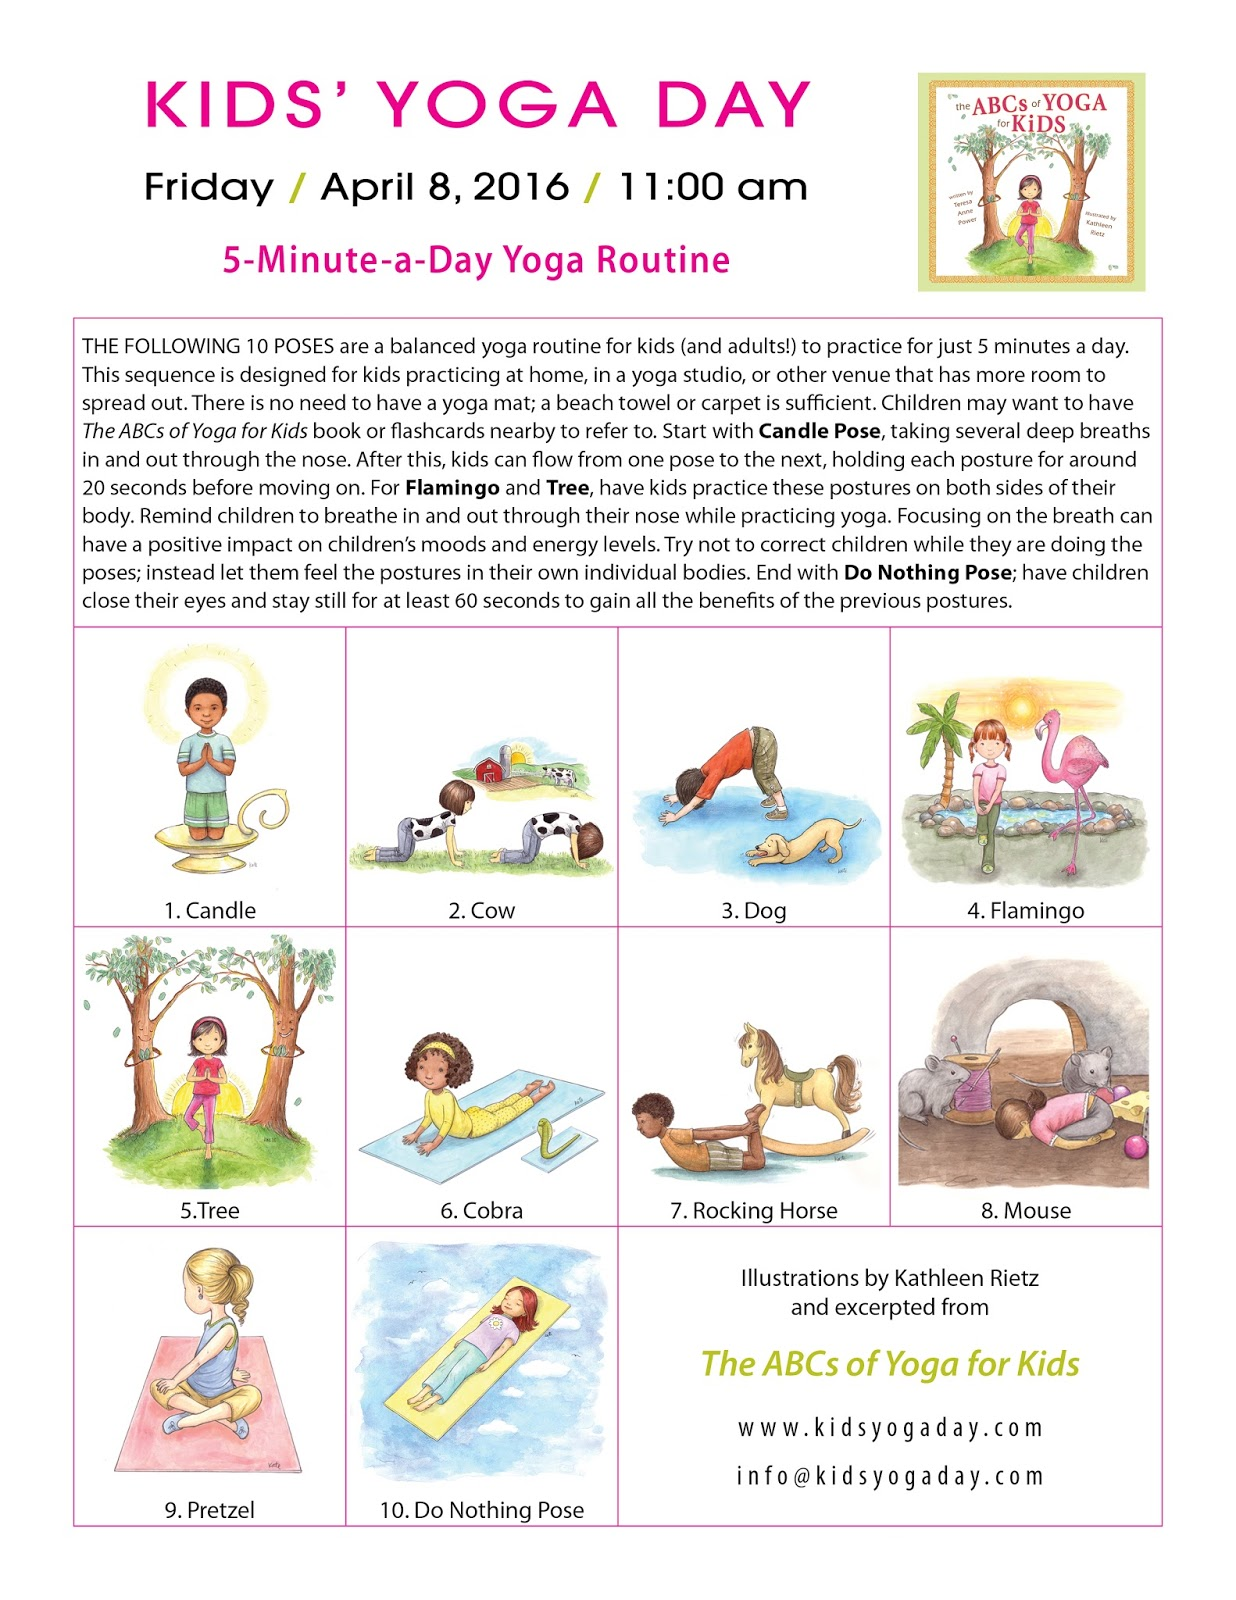 It Is Also One Of The Suggested Yoga Routines For Kids Day And Has 10 Poses That You Your Family Can Practice Together Over Spring Break